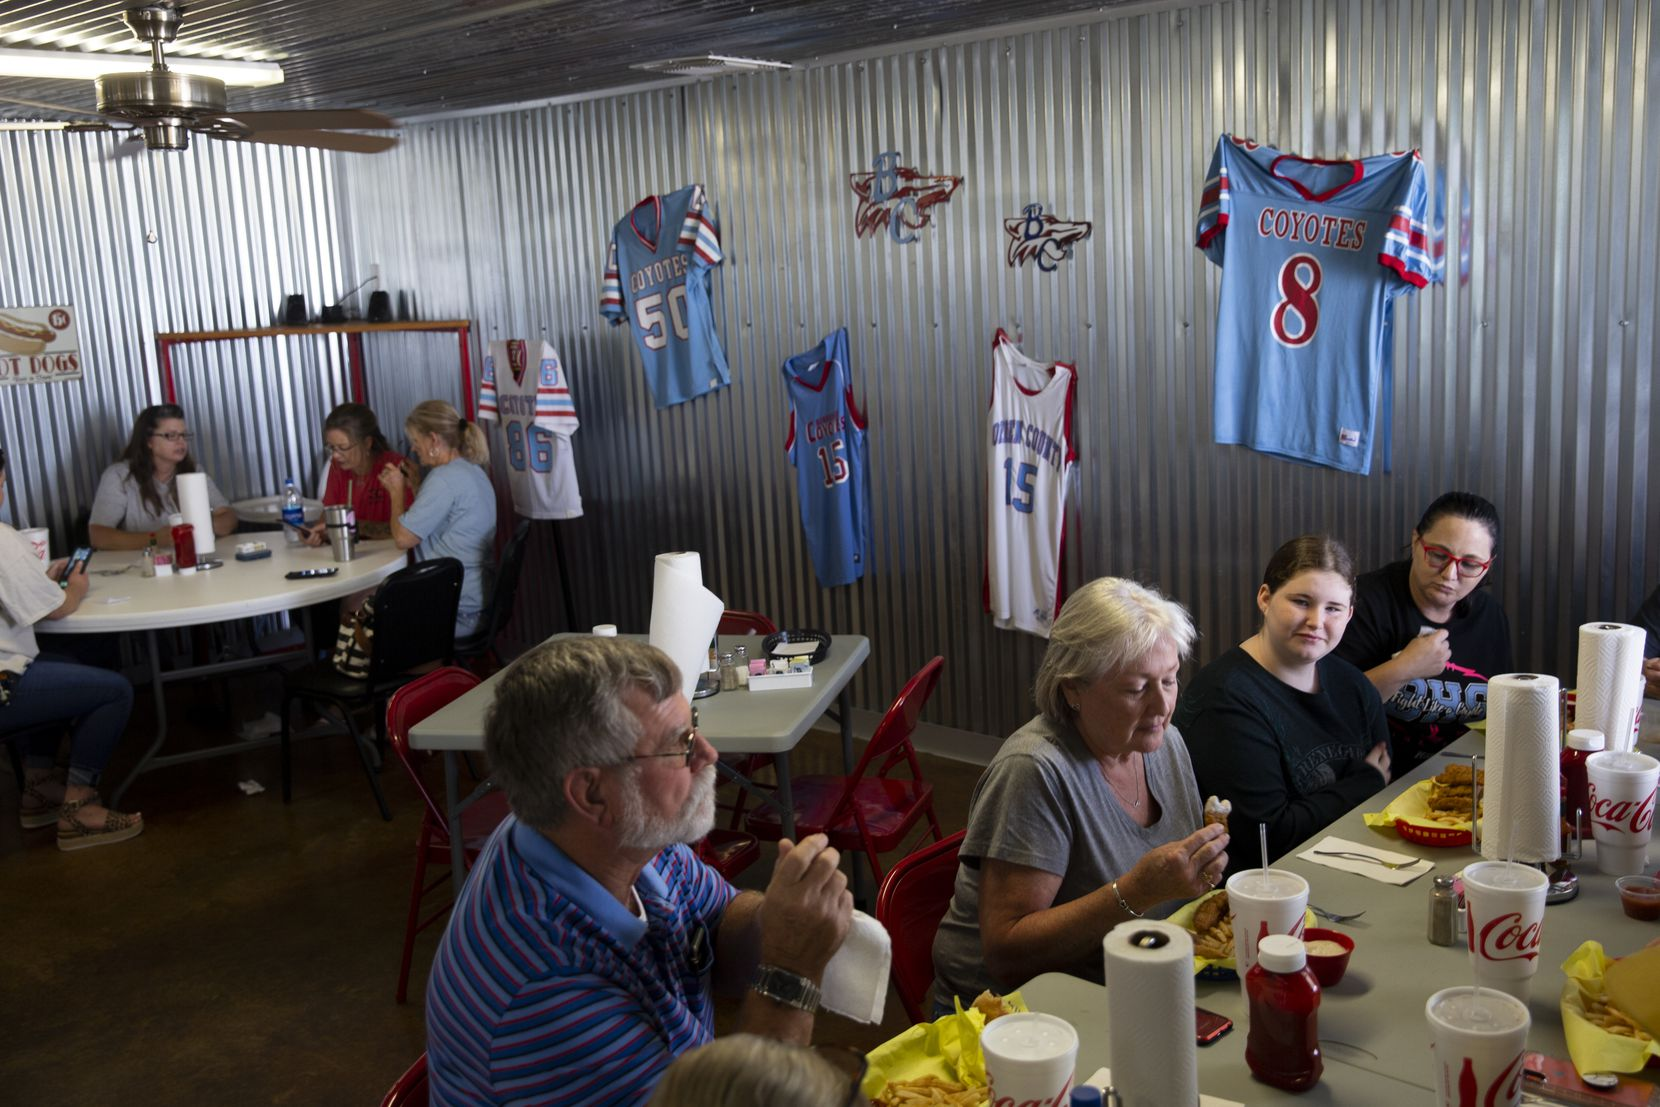 Borden County High School football jerseys hang in the background at The Blue Paw Cafe as Borden County Judge Ross Sharp (bottom left) enjoys lunch on Aug. 18, 2020 in Gail. There have been no reported cases of coronavirus in Borden County.